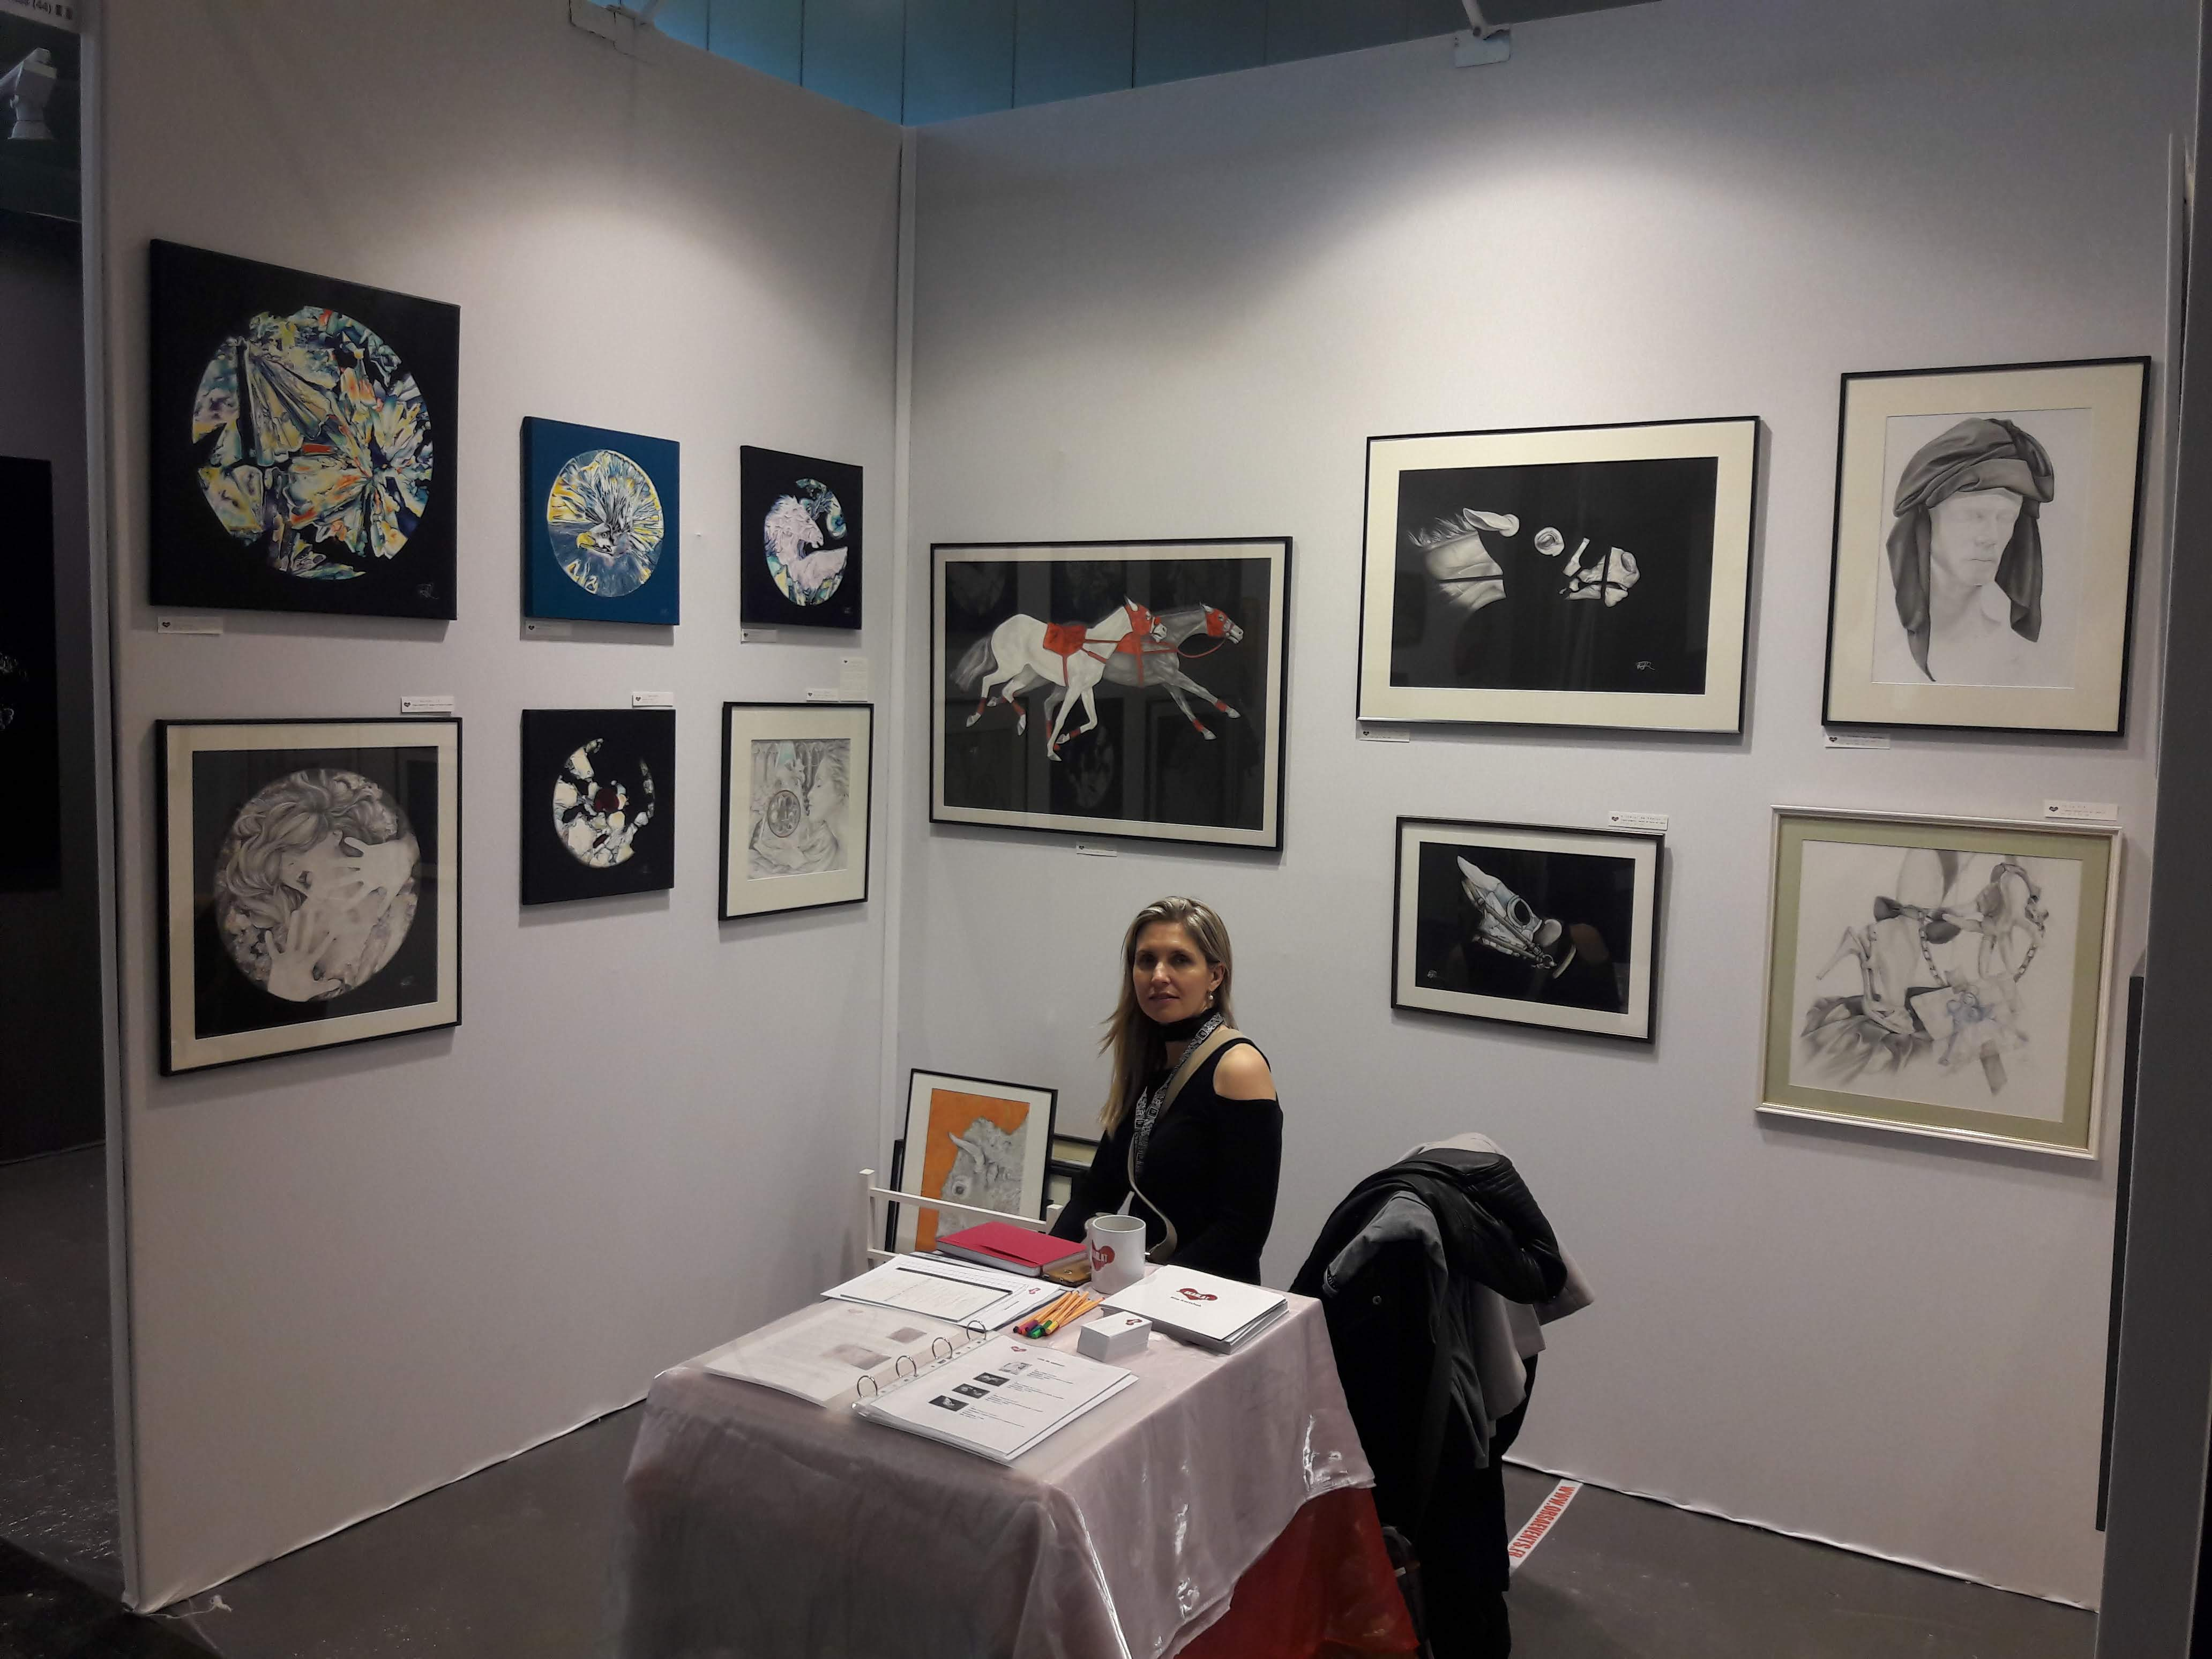 Février 2019 : Salon International d'Art Contemporain ART 3F - Porte de Versailles, Paris